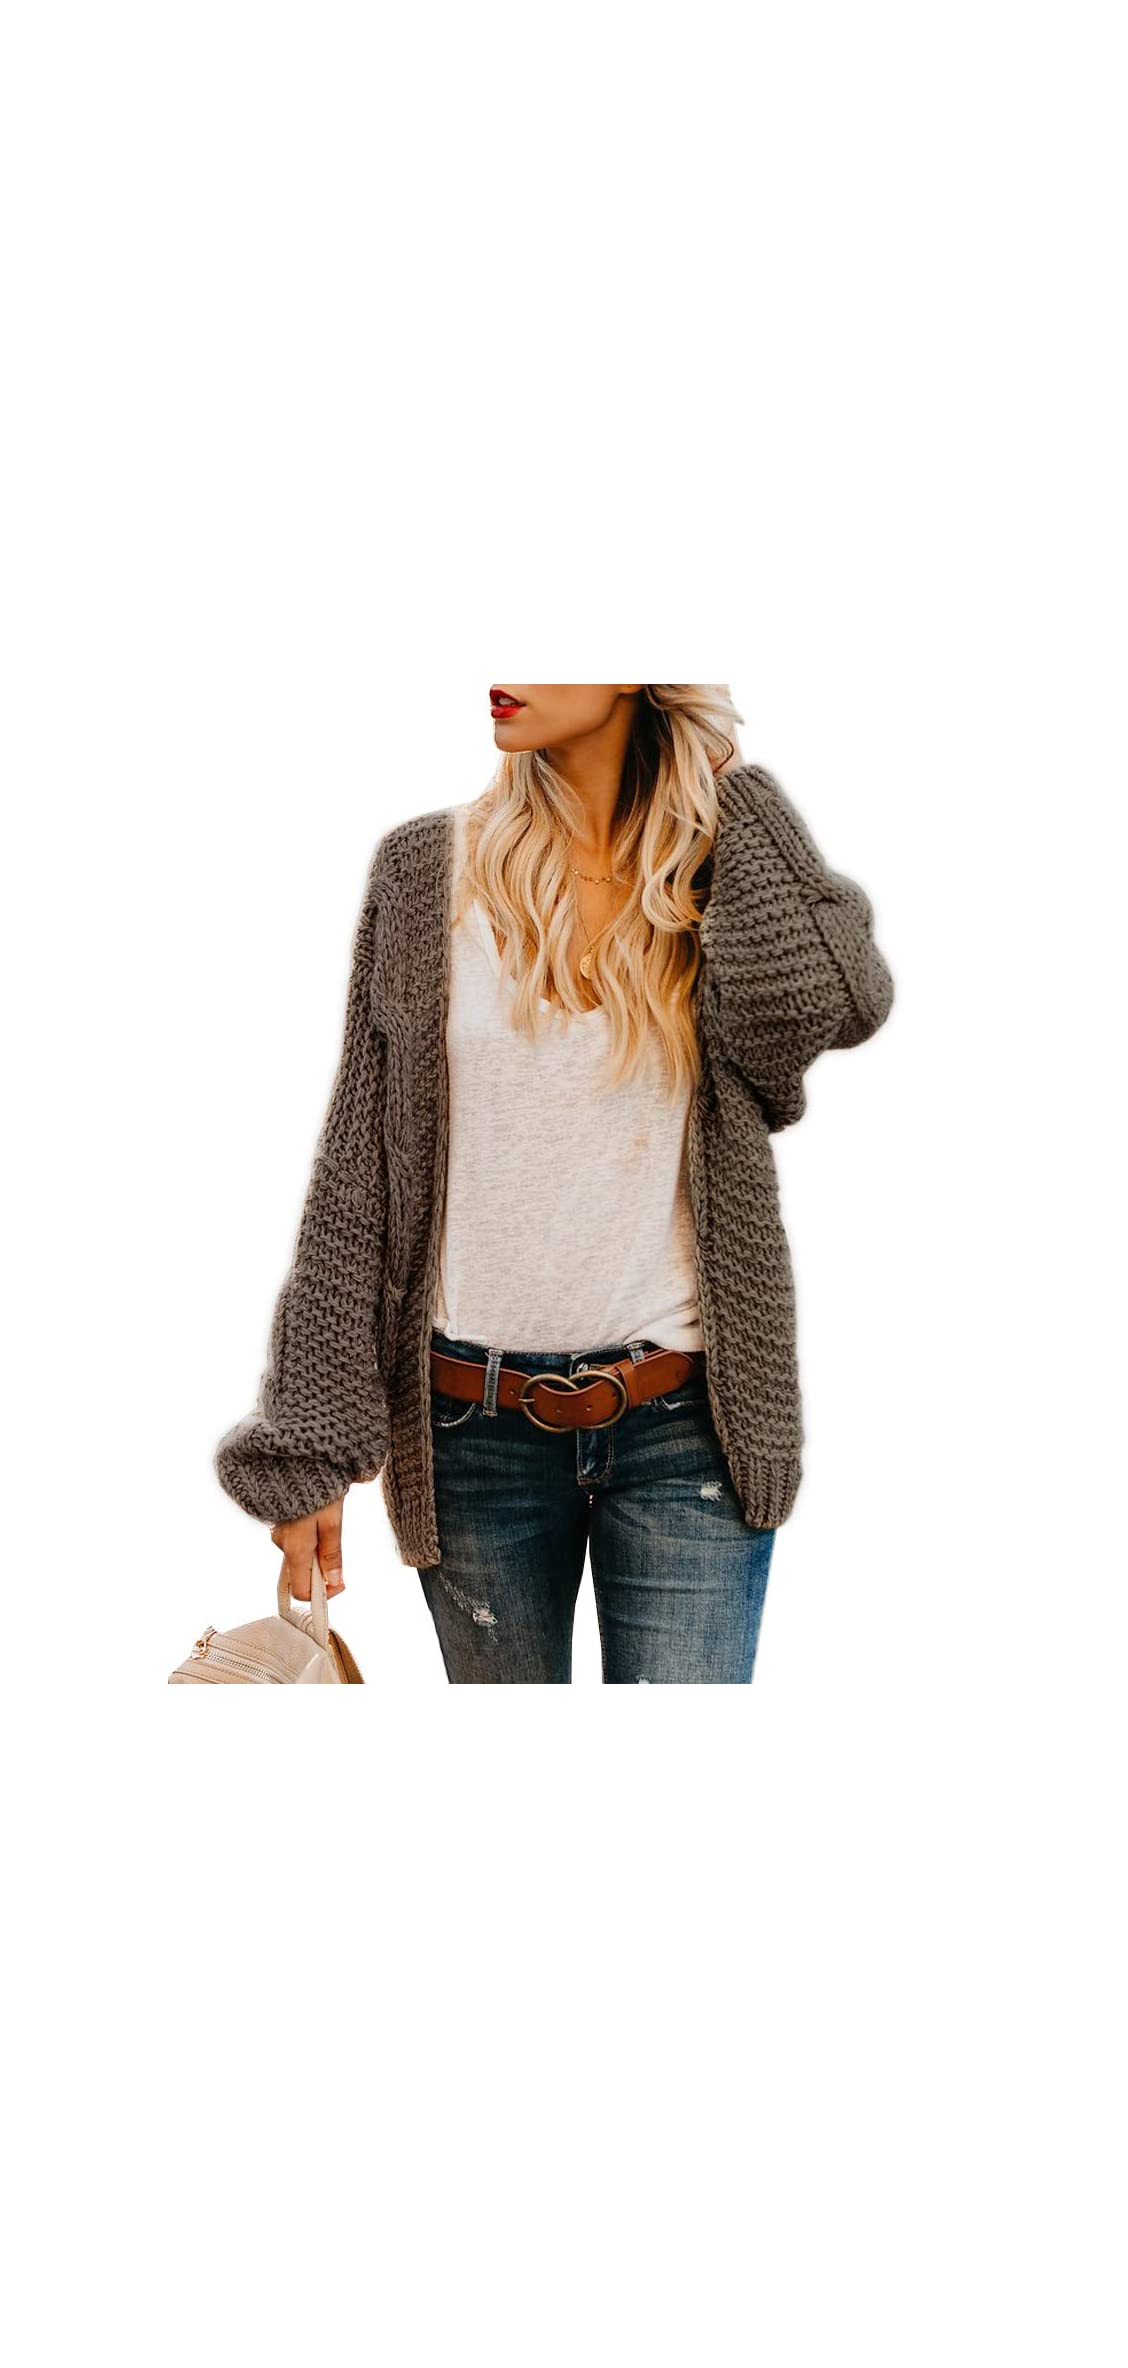 Plus Size Womens Cardigan Sweaters Cable Knit Chunky Oversized